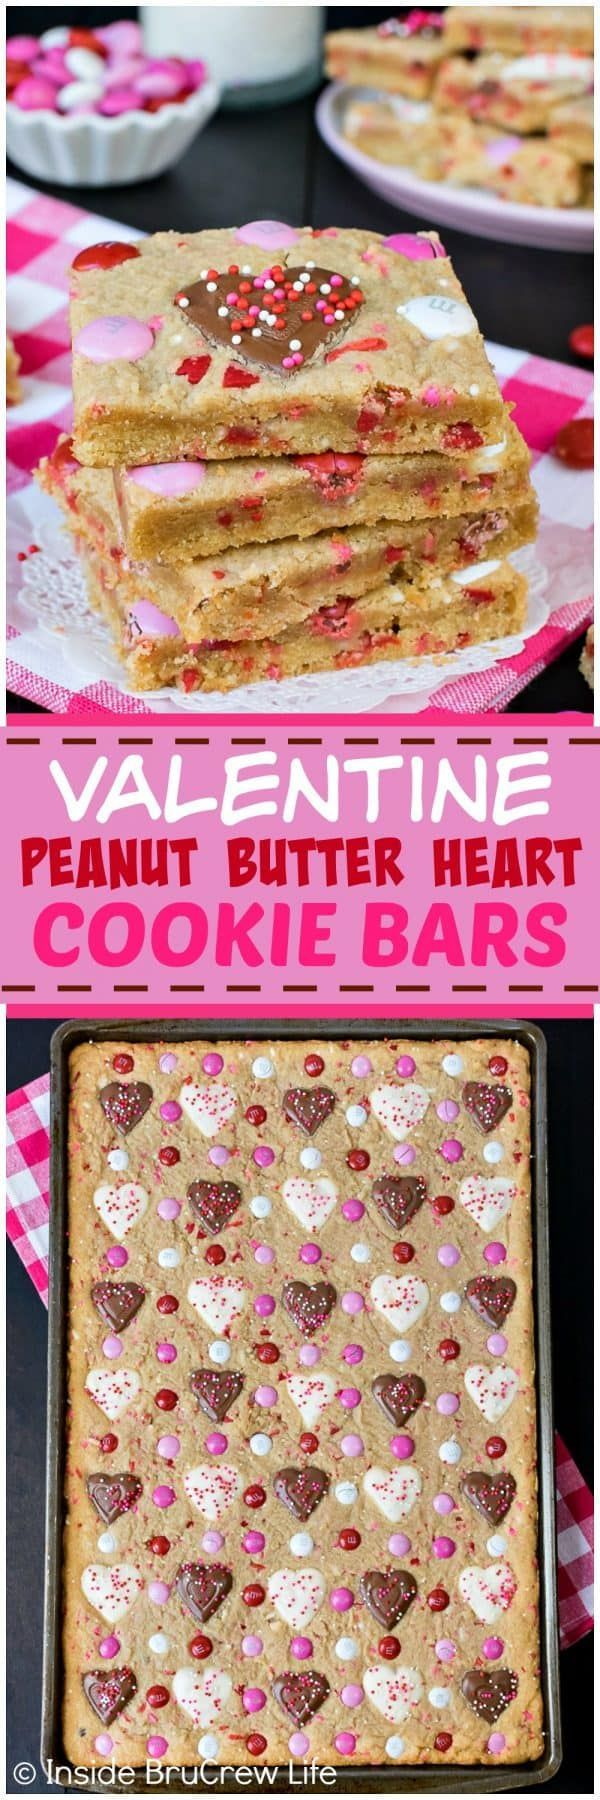 Valentine Peanut Butter Heart Cookie Bars - these easy bar cookies are loaded with sprinkles, candies, and peanut butter cup hearts! Such a quick and easy recipe to make for Valentine's day parties! #cookies #peanutbutter #peanutbutterhearts #valentine #valentinesdaytreats #cookiebars #dessert #reeses